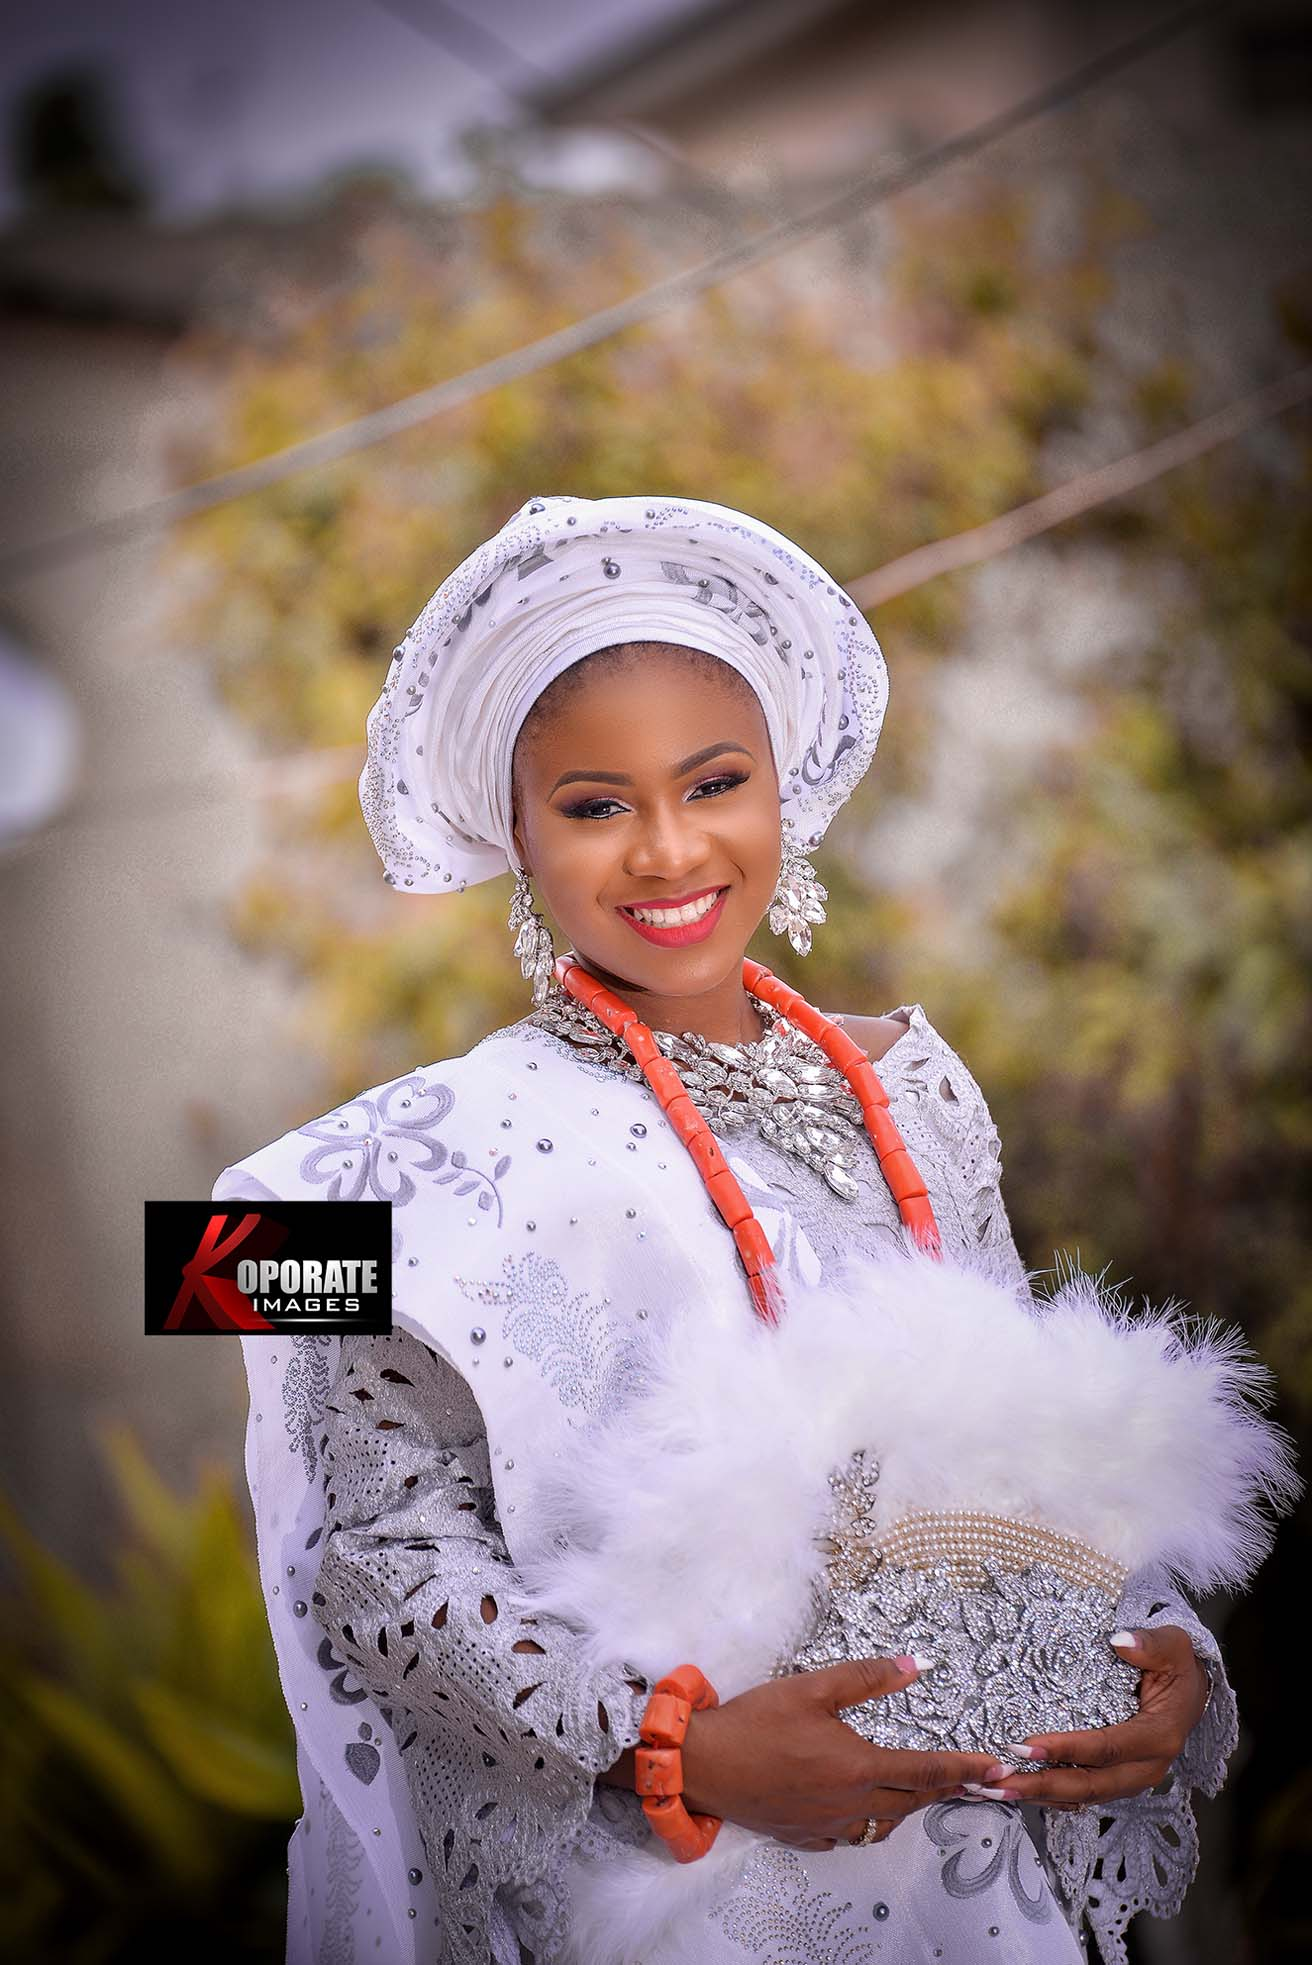 PRECIOUS AND OSAROBO-EDO WEDDING wedding photos|Koporate Images|Photography & Video Coverage studio in Benin City|Professional Photographers for your events|Nigerian Wedding Photographer in Benin City|Edo Brides, benin brides